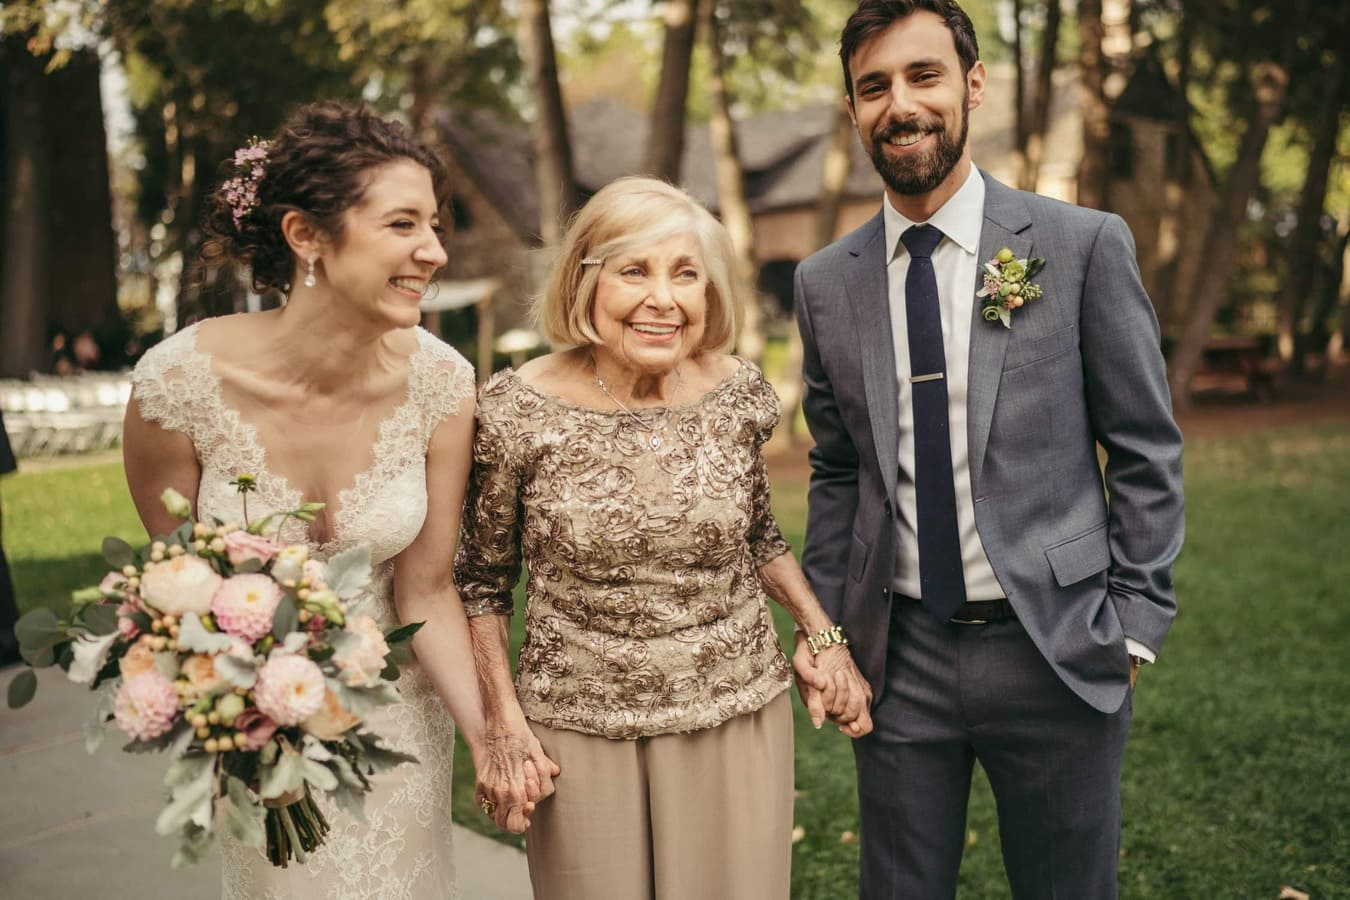 Bride and groom smile and hold hands with grandma before wedding ceremony in Hudson Valley.